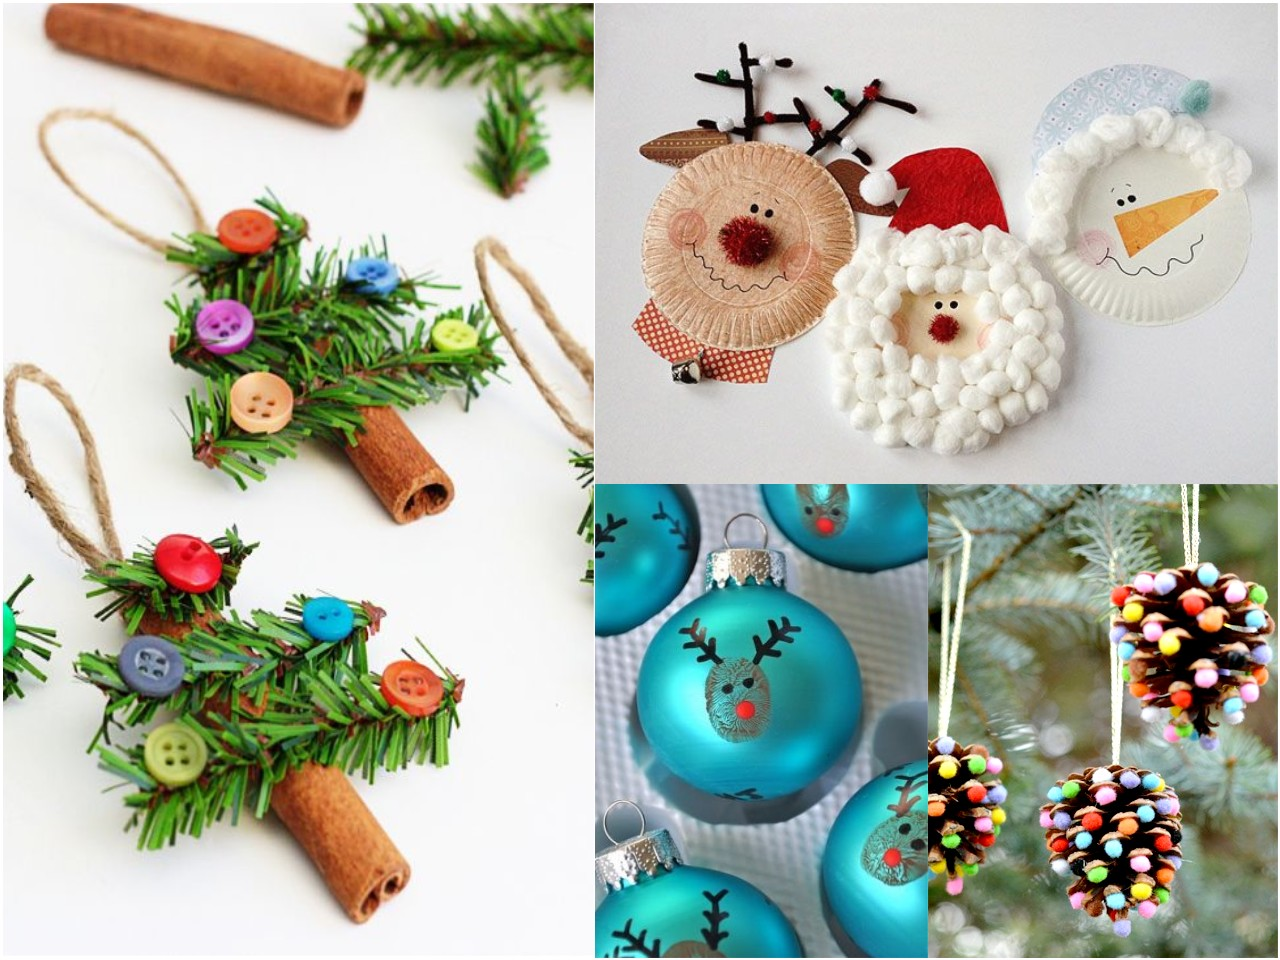 25 diy de decoraci n navide a infantil Ideas de decoracion manualidades